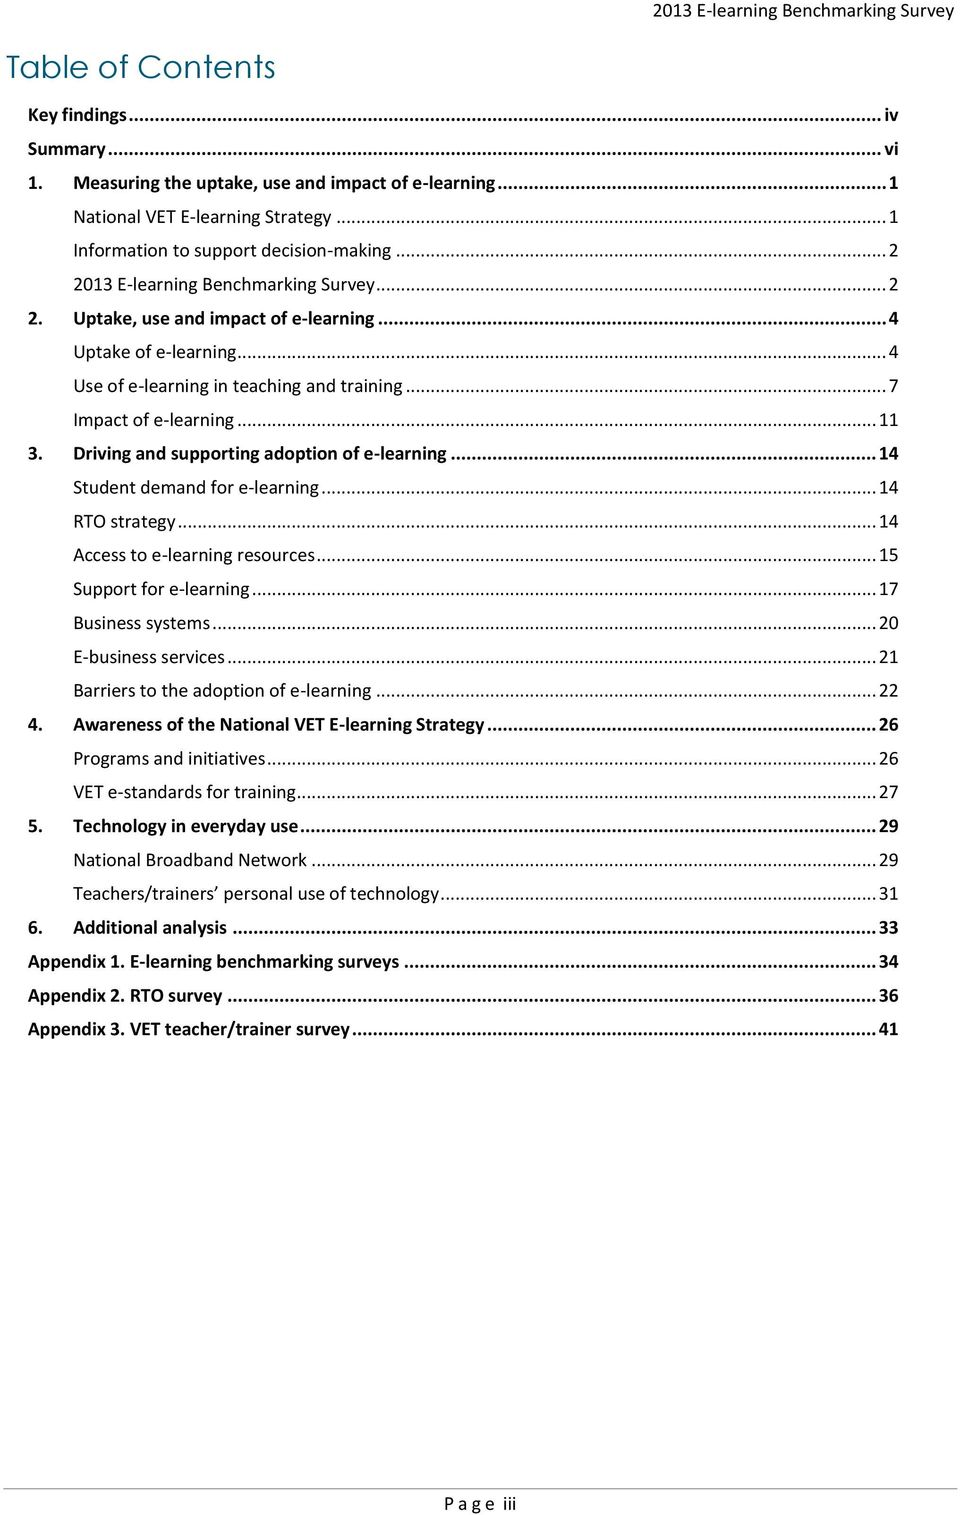 Driving and supporting adoption of e-learning... 14 Student demand for e-learning... 14 RTO strategy... 14 Access to e-learning resources... 15 Support for e-learning... 17 Business systems.